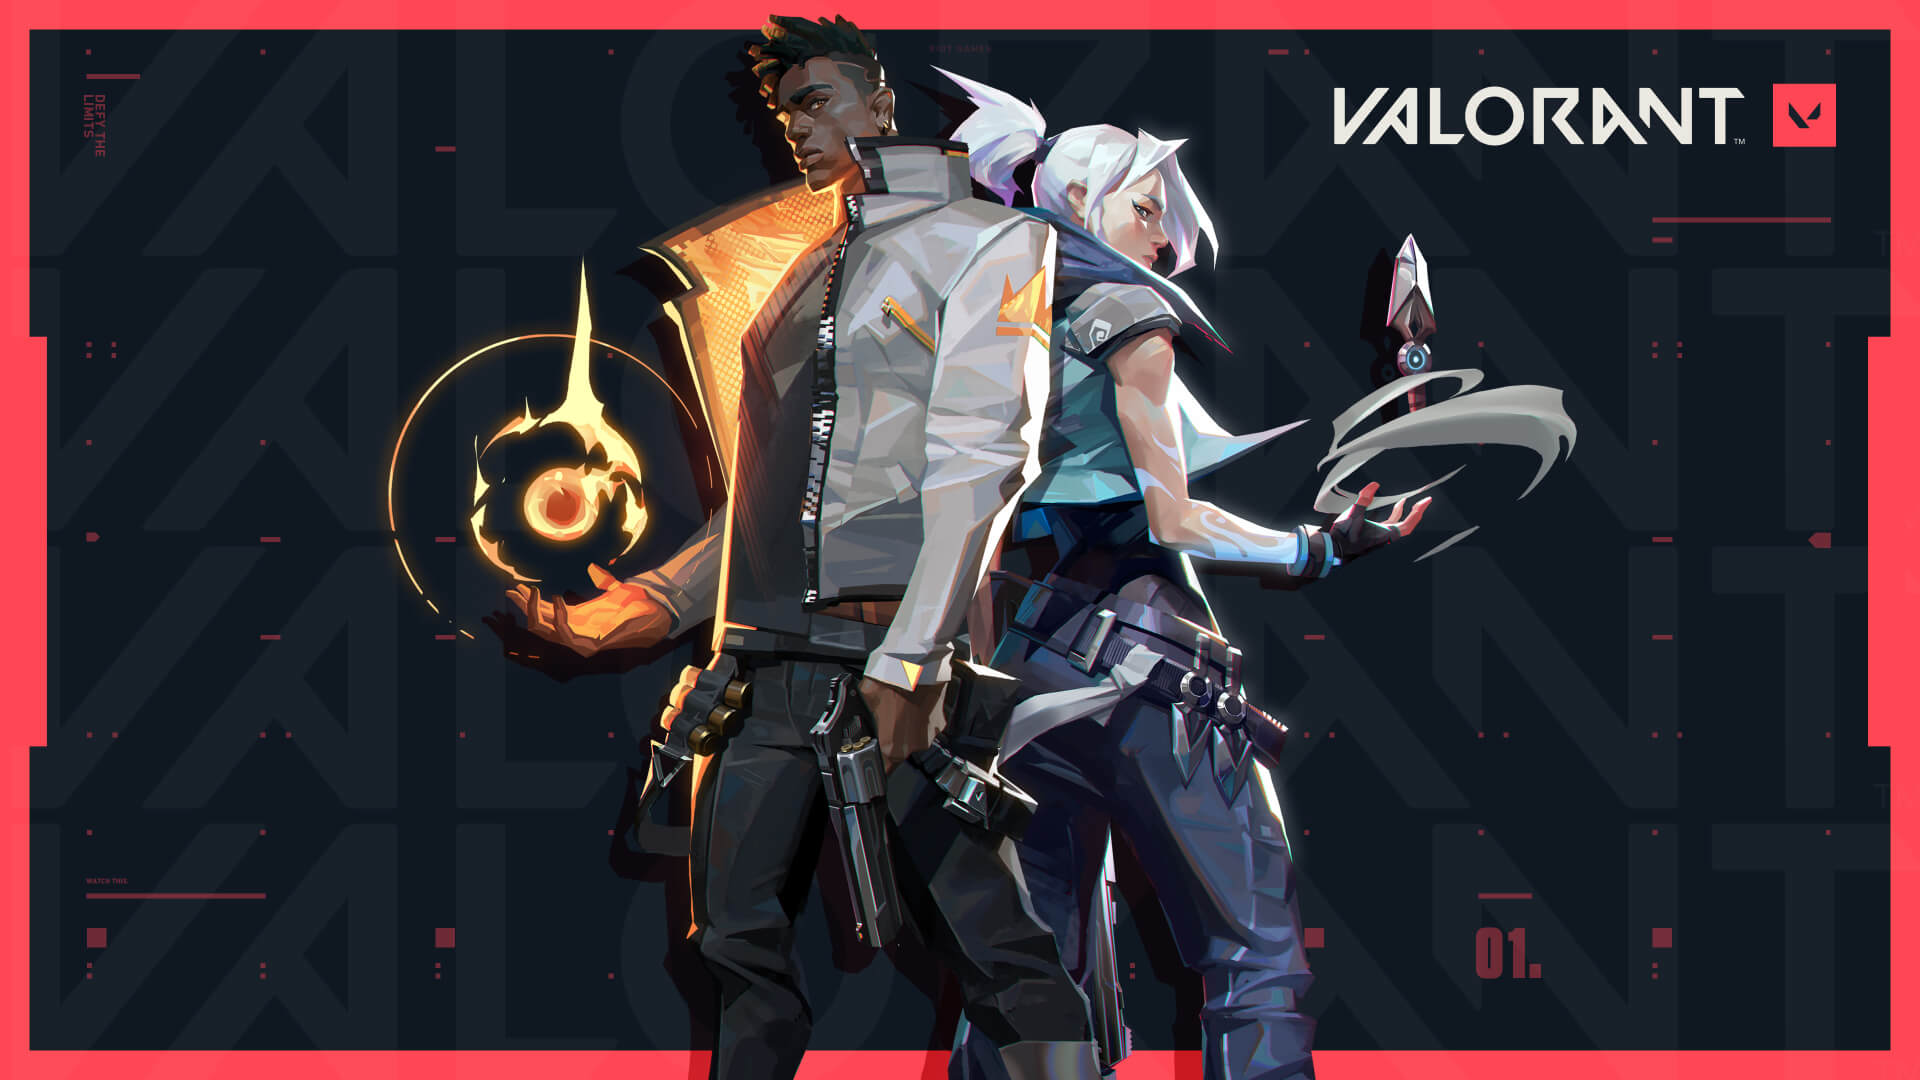 Valorant 1.0 Releases, Available To All PC Players